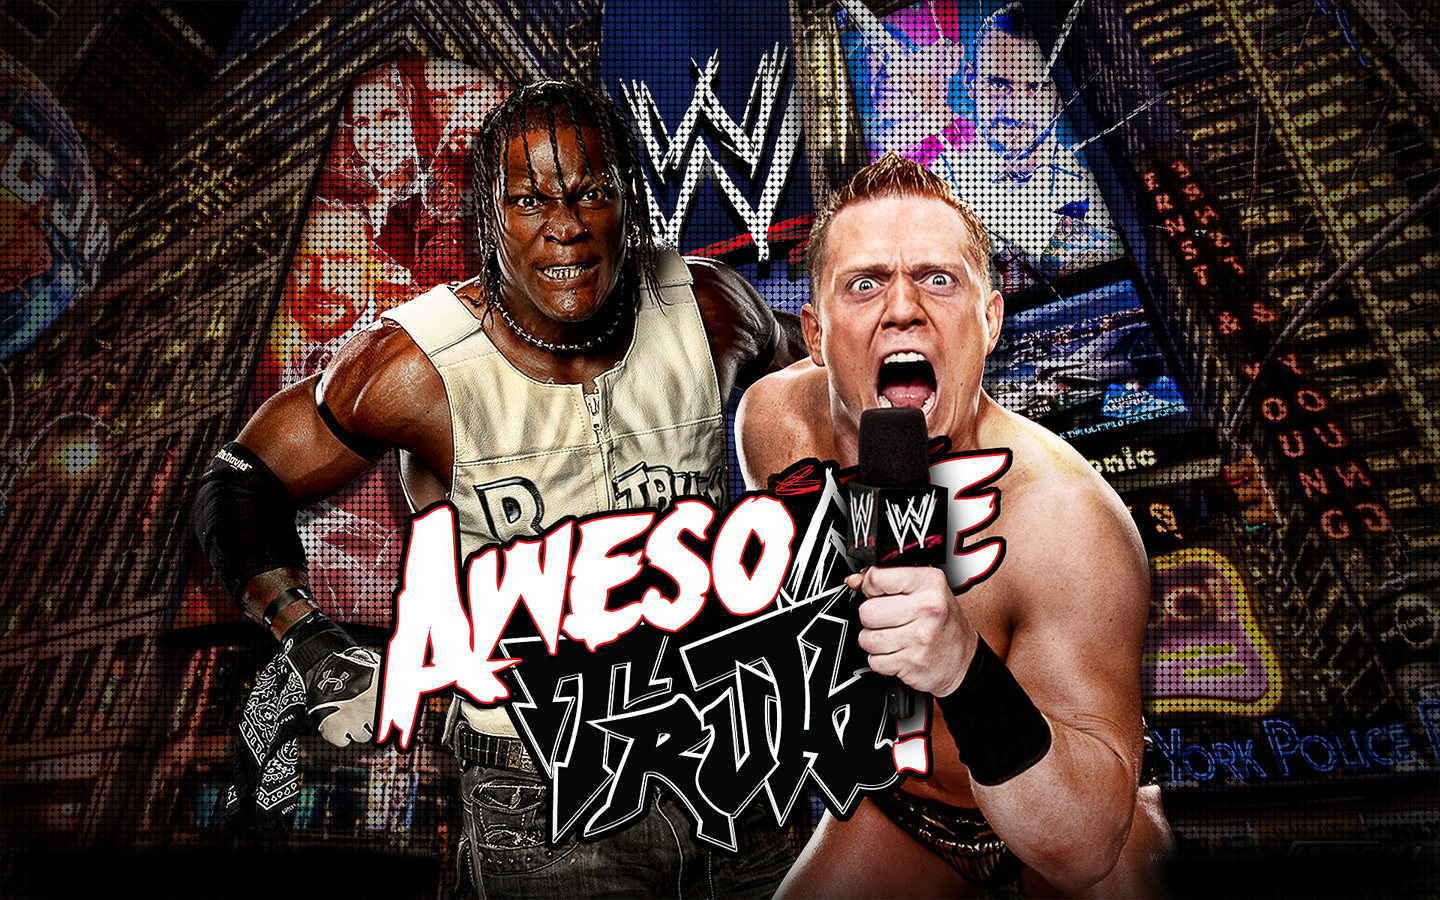 New awesome truth wallpaper kamal design lab - Wwe rated rko wallpaper ...